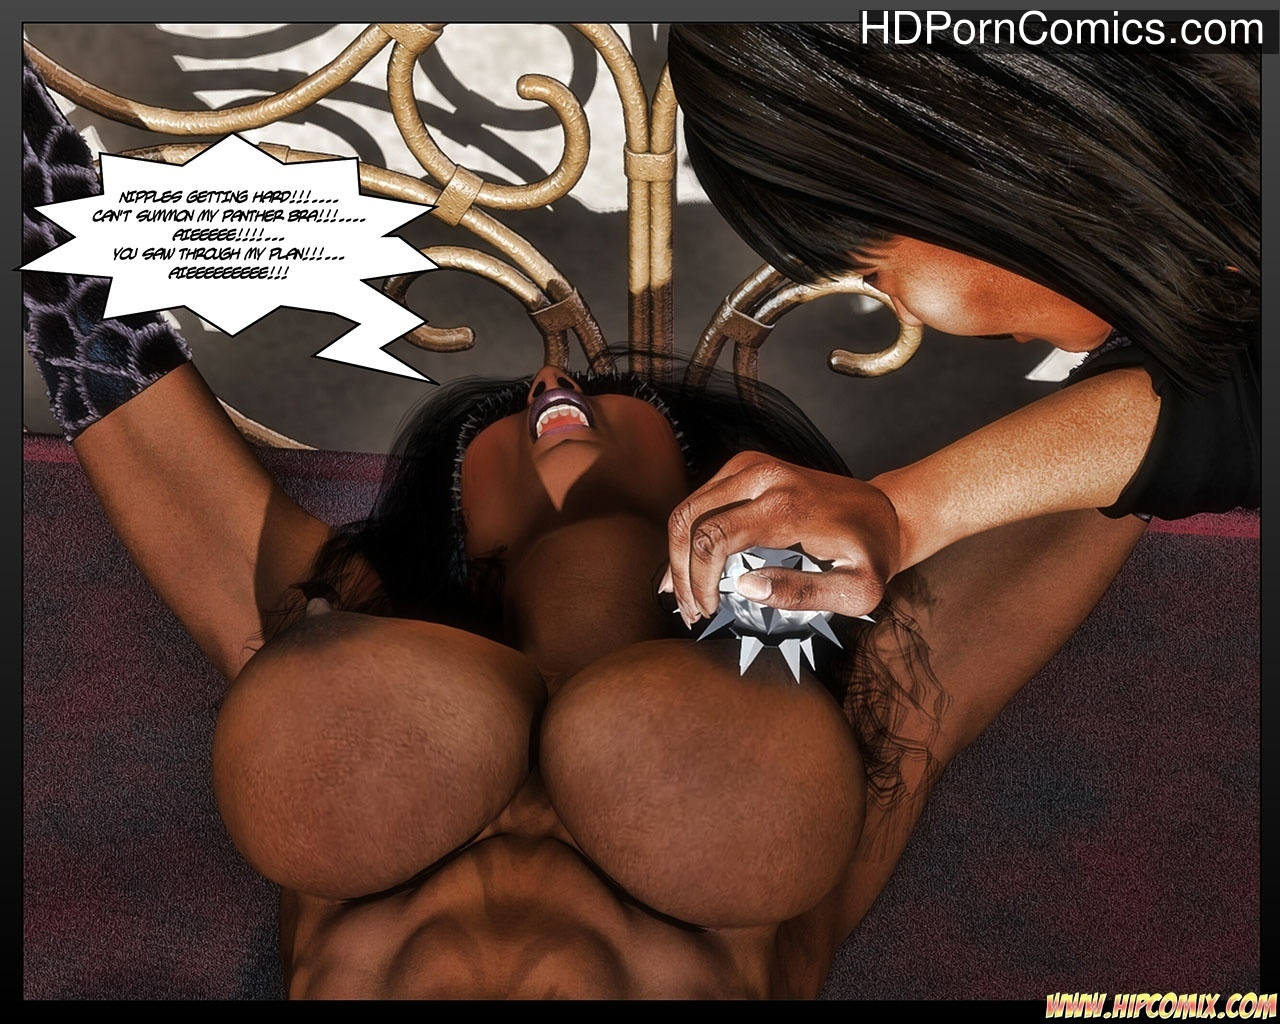 Panther-Girl-24 11 free sex comic